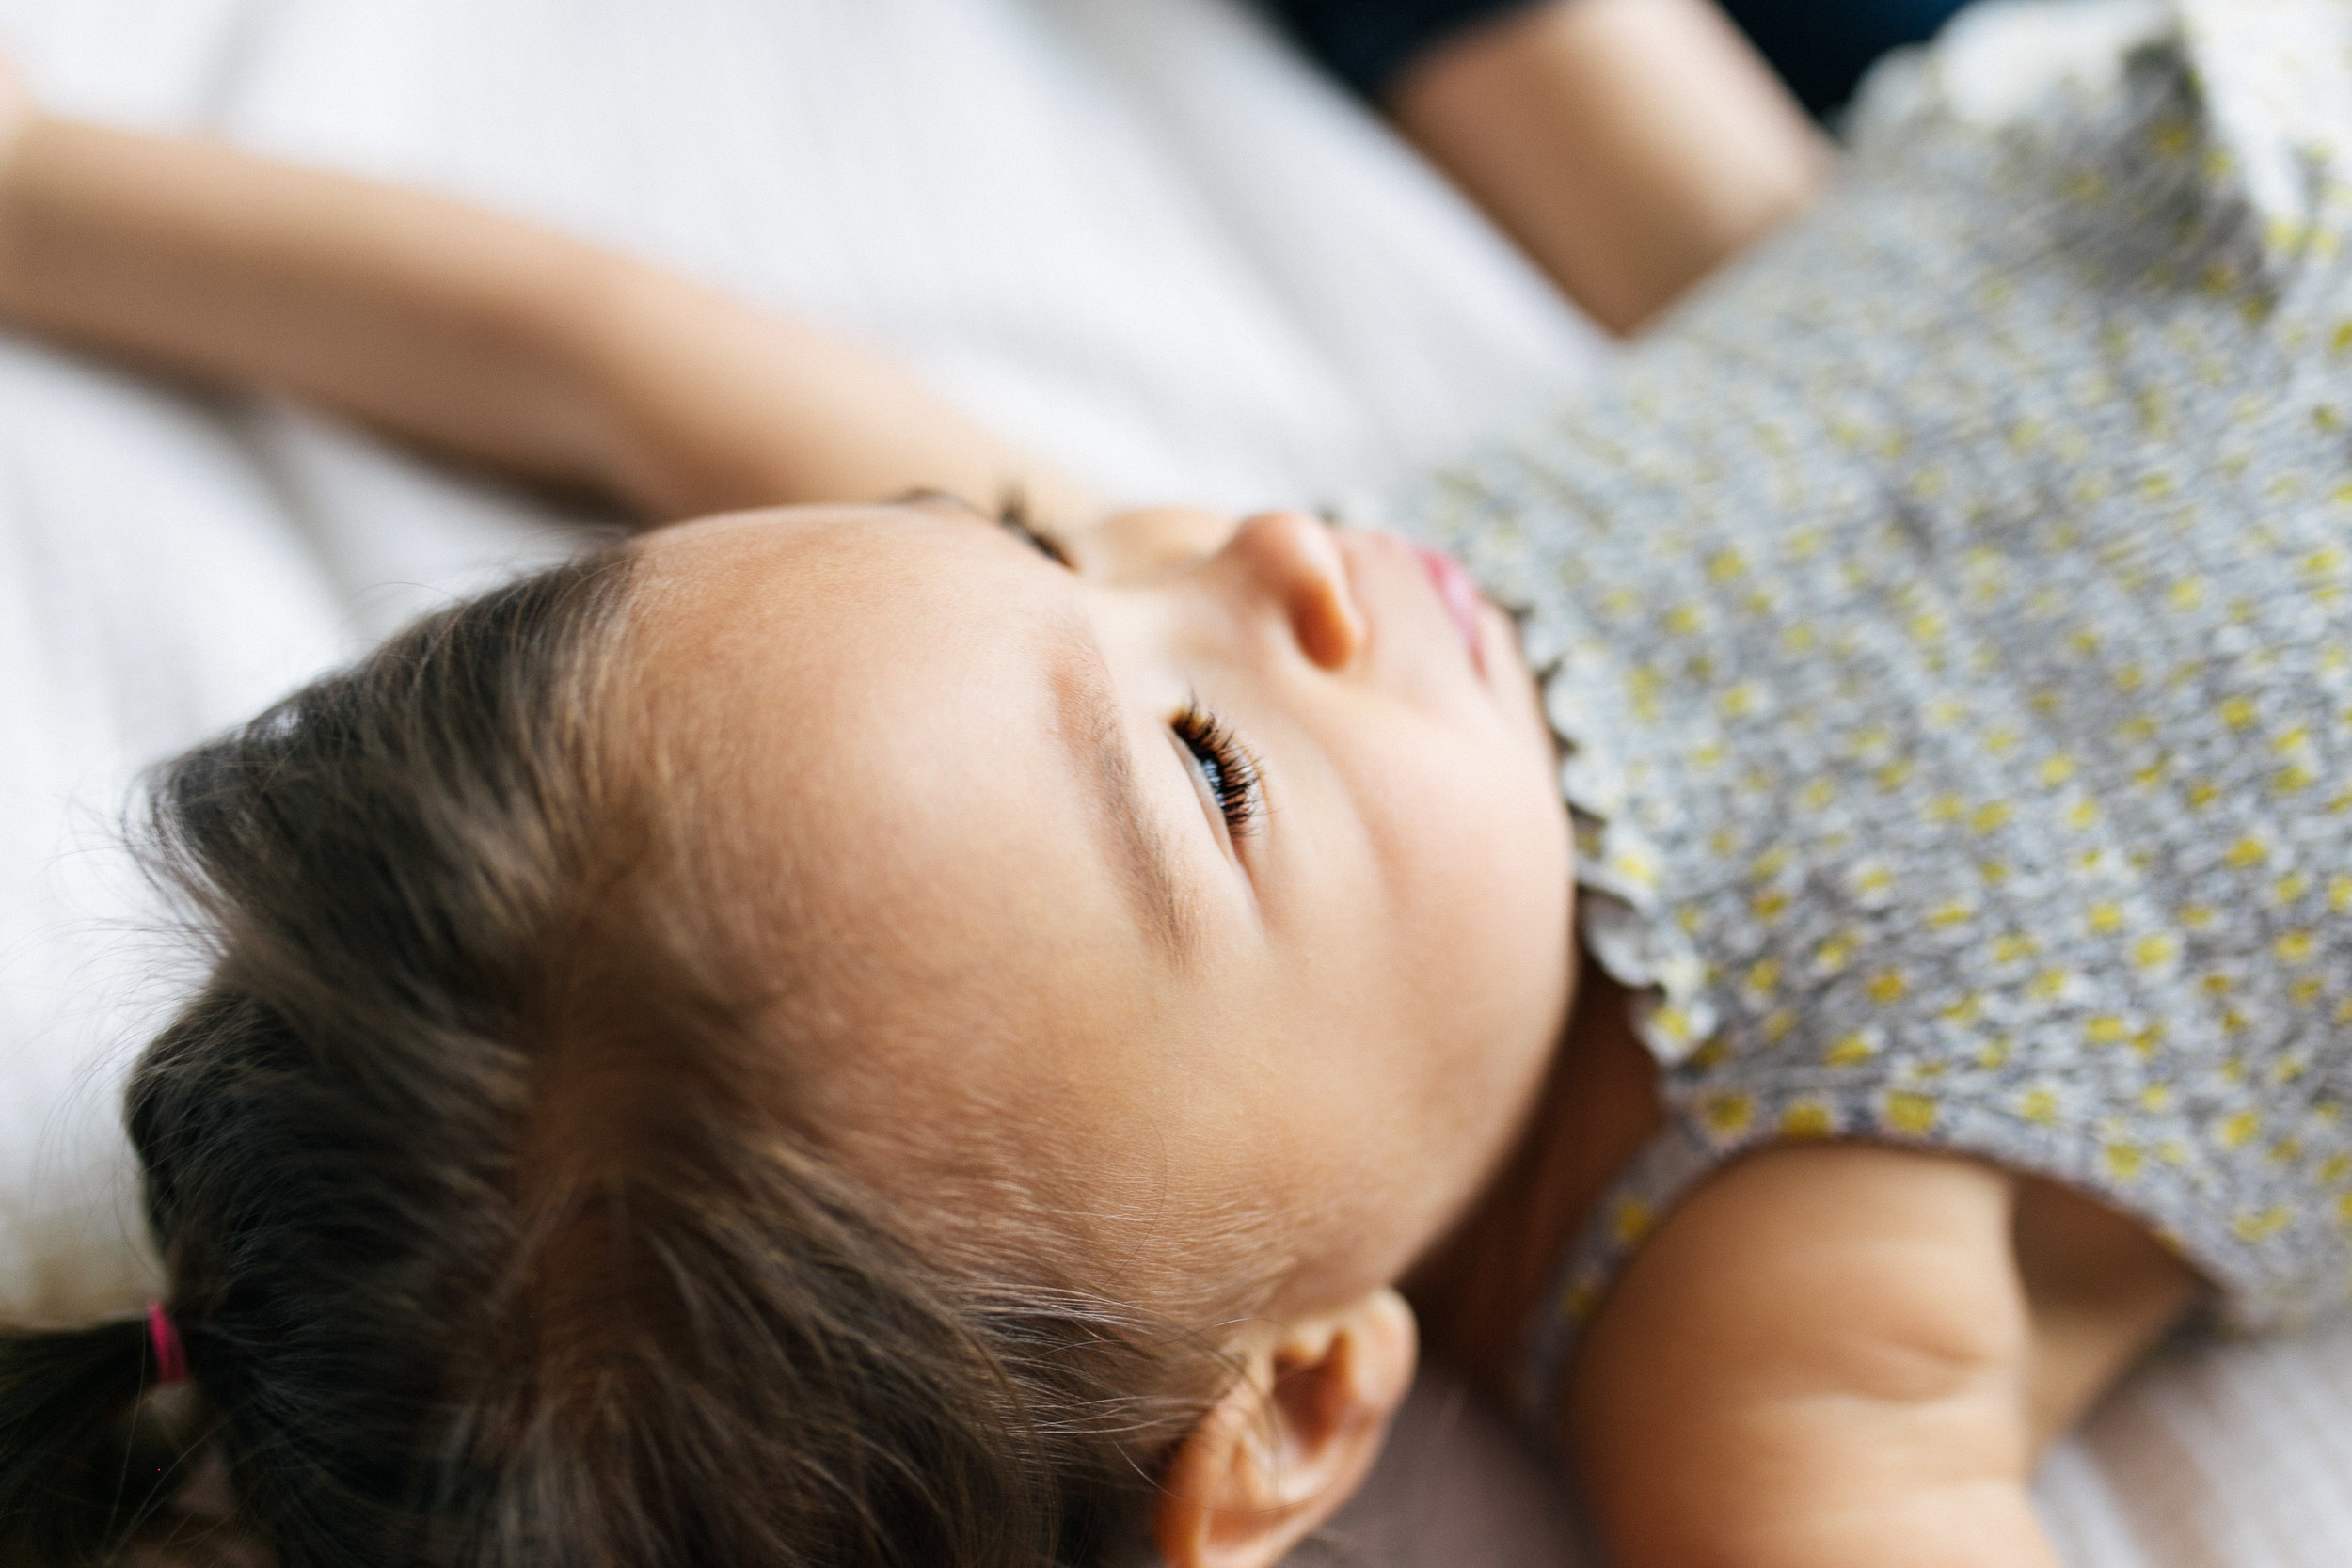 Newborn Family Session, Natural Light in Home, toddler in house lifestyle | Chelsea Macor Photography Seattle WA-11.jpg